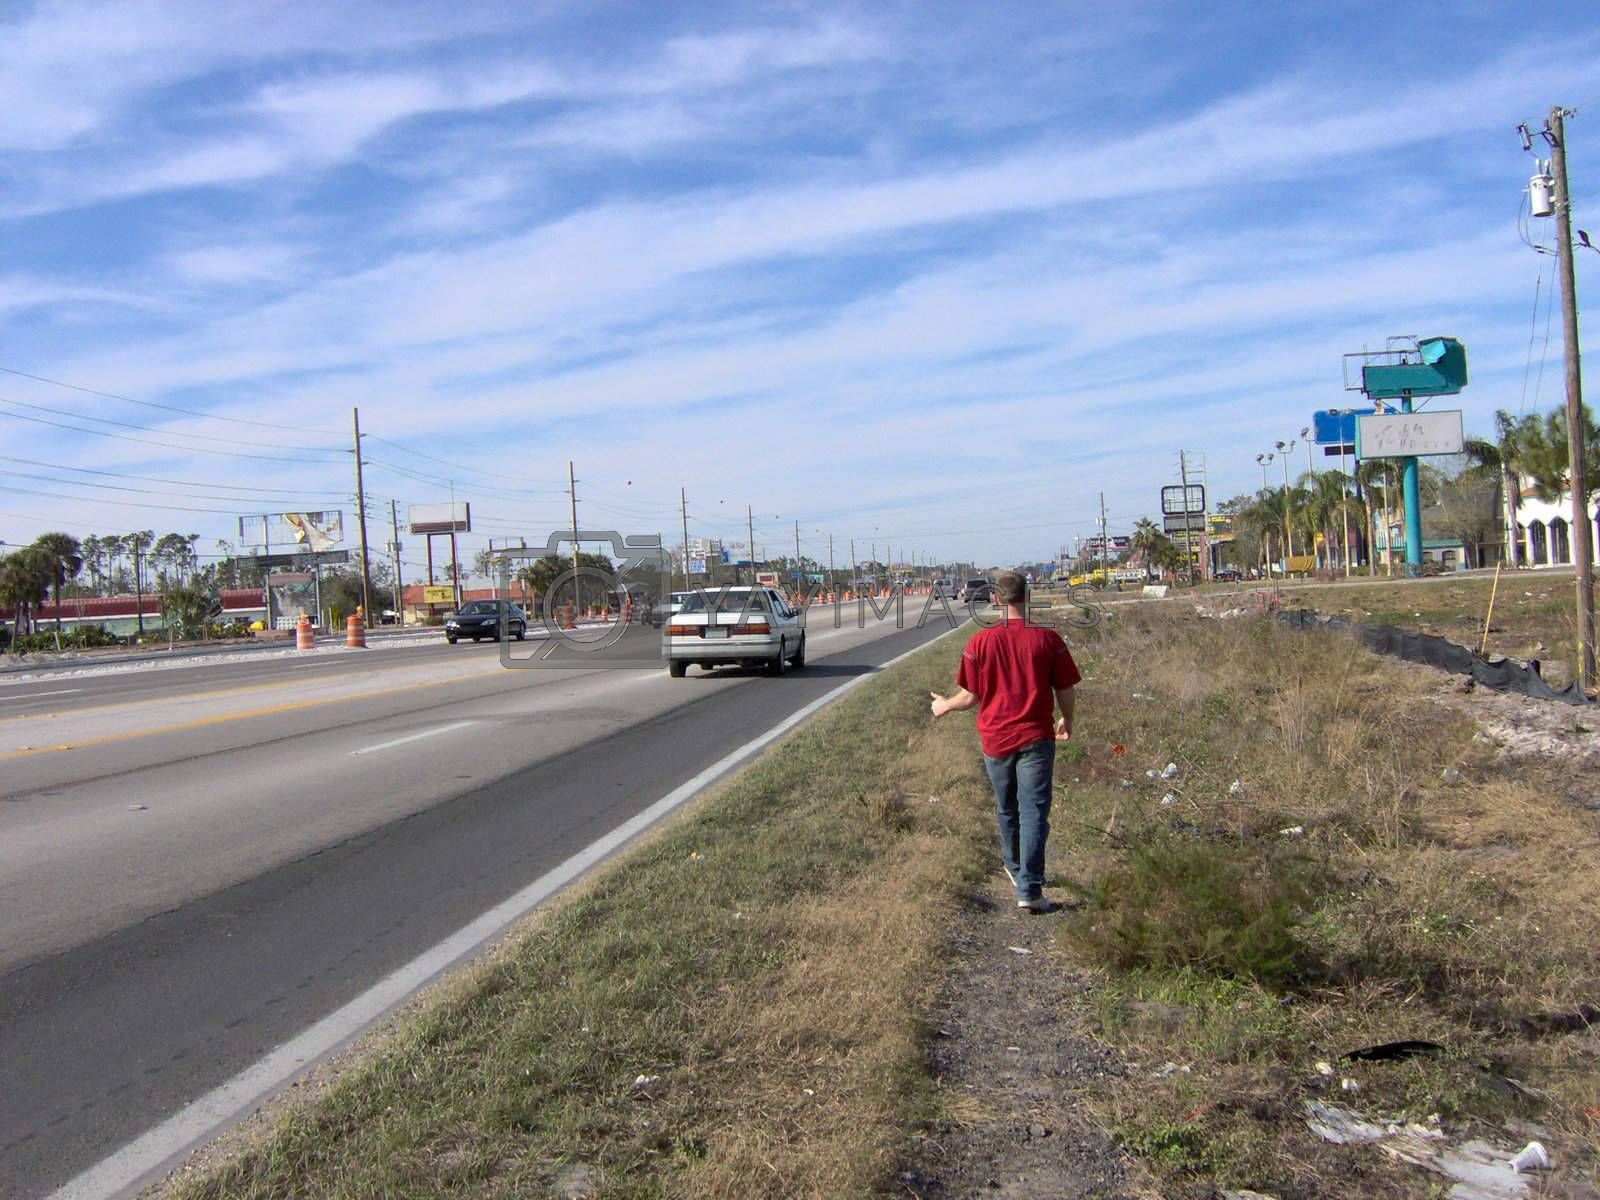 Hitchhiking on the side of a busy street in Florida, USA.